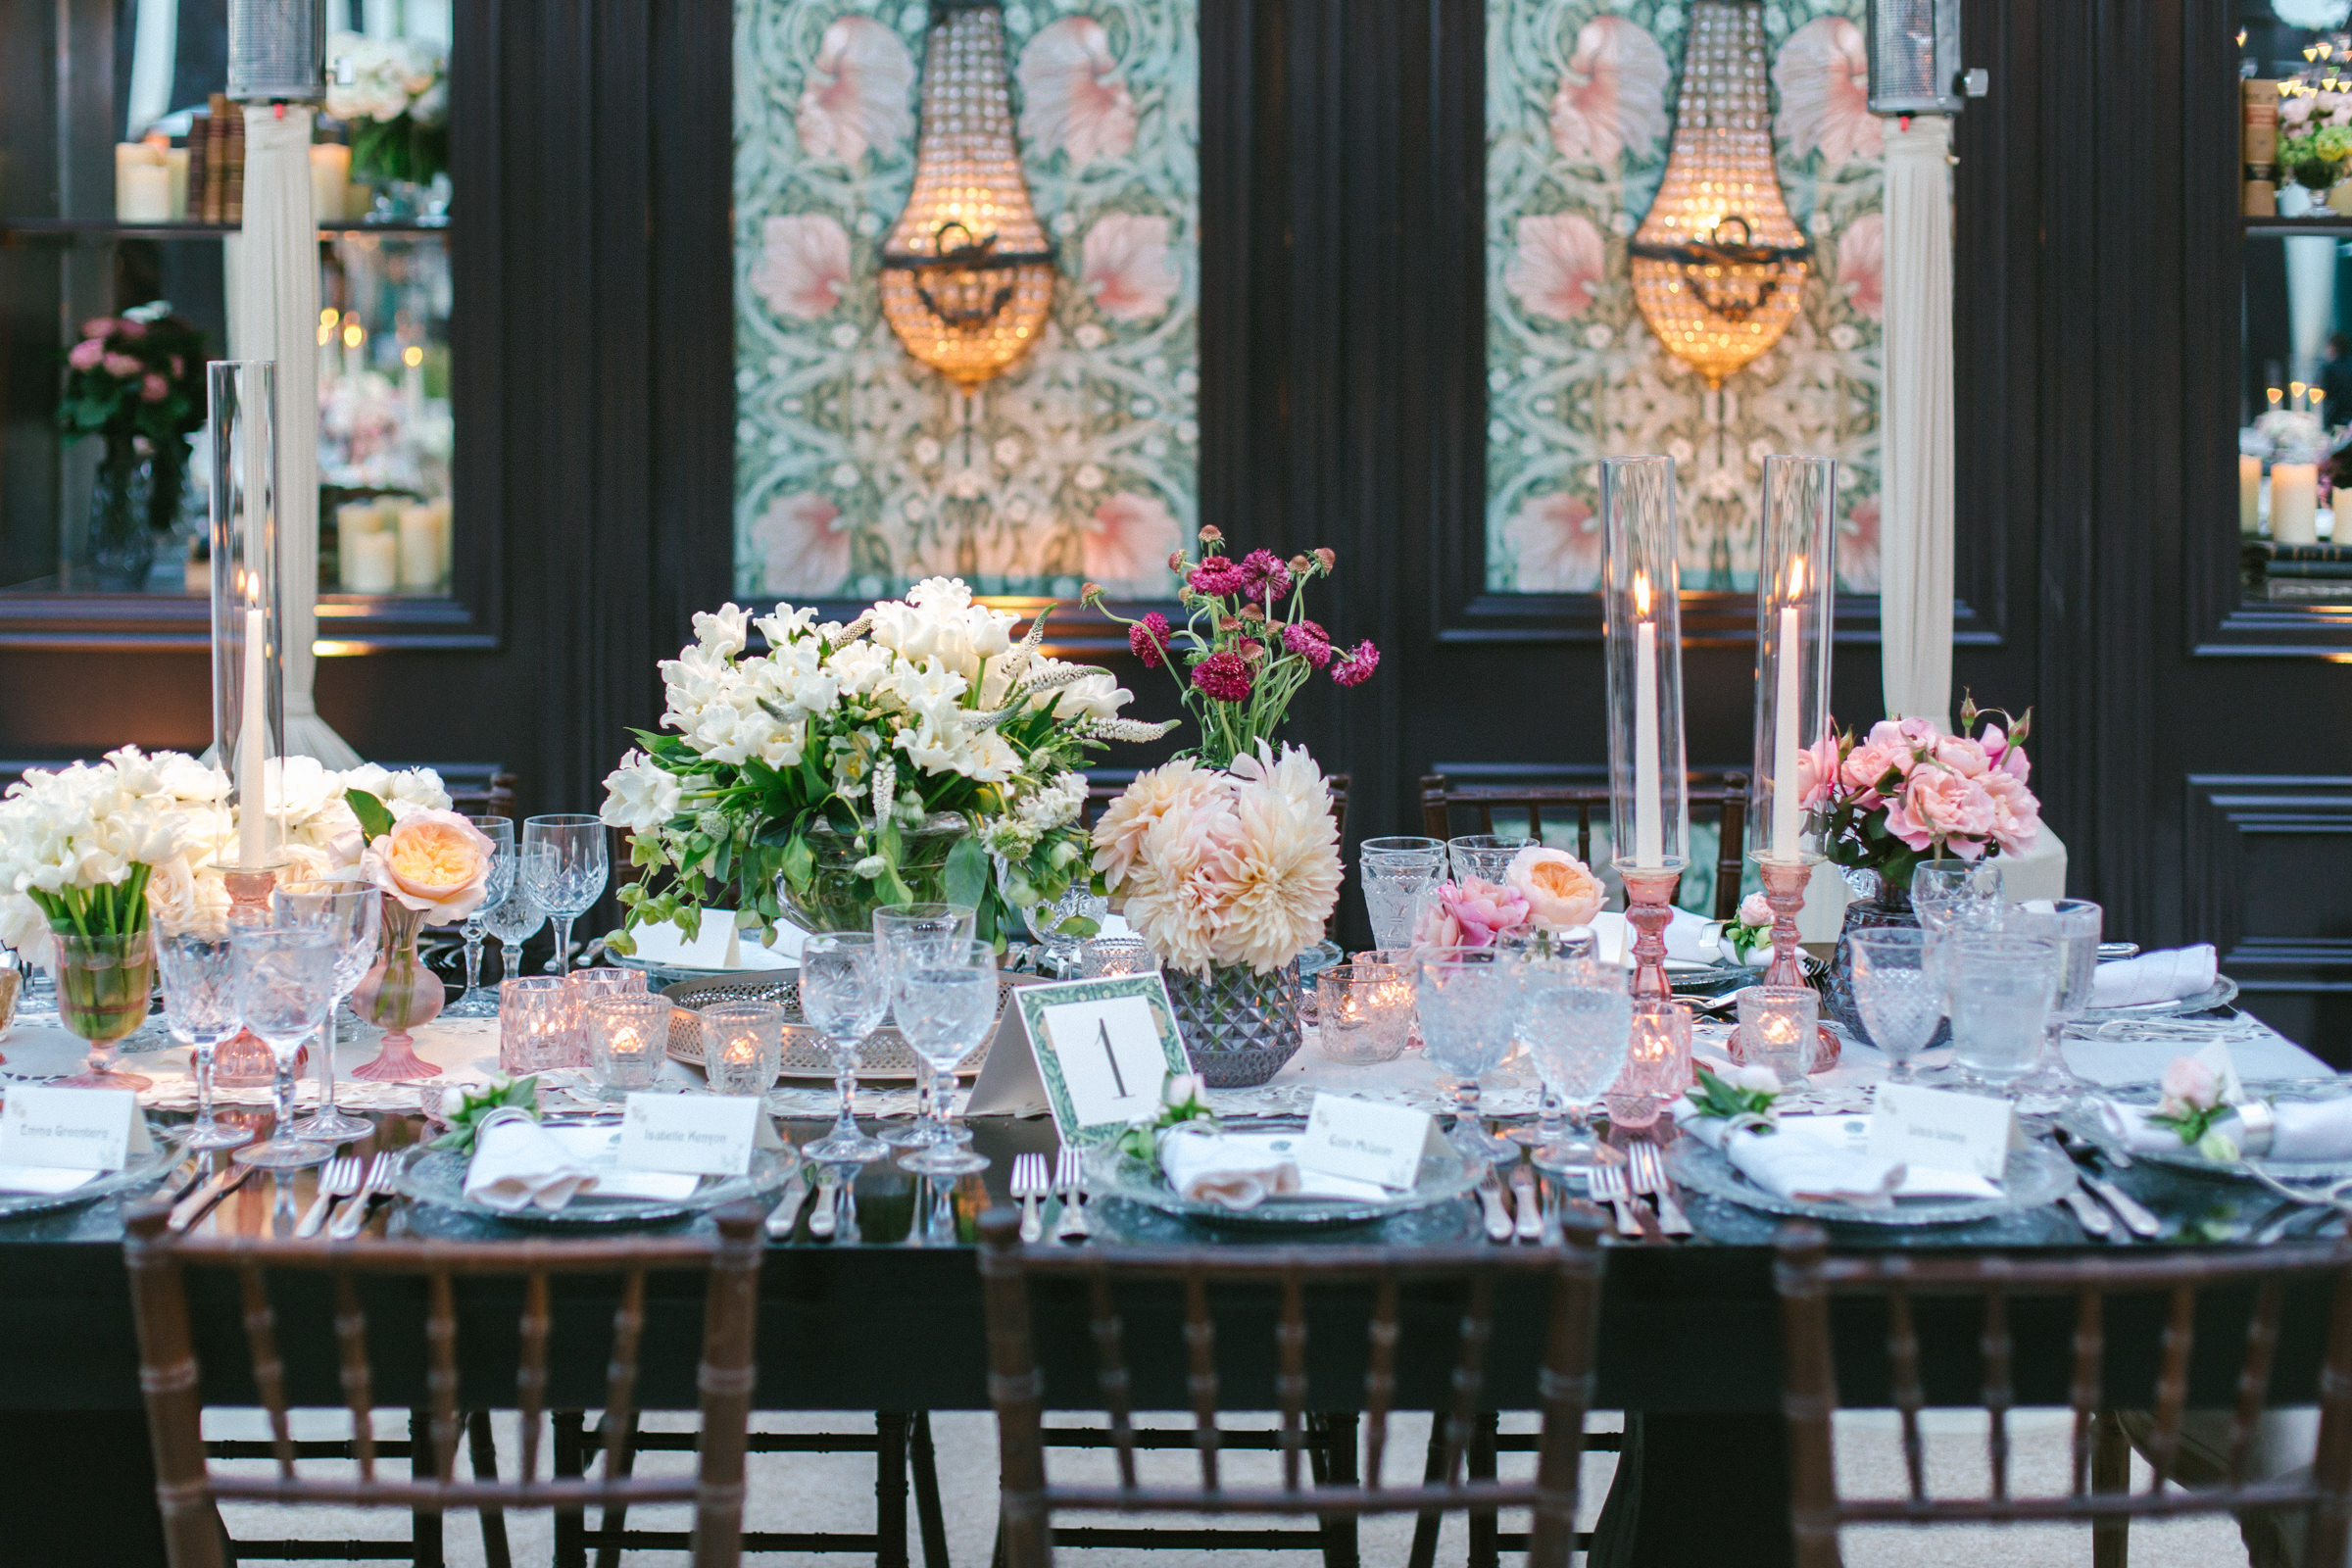 reception-table-with-floral-decorations-in-art-nouveau-interior-amyandstuart-photography